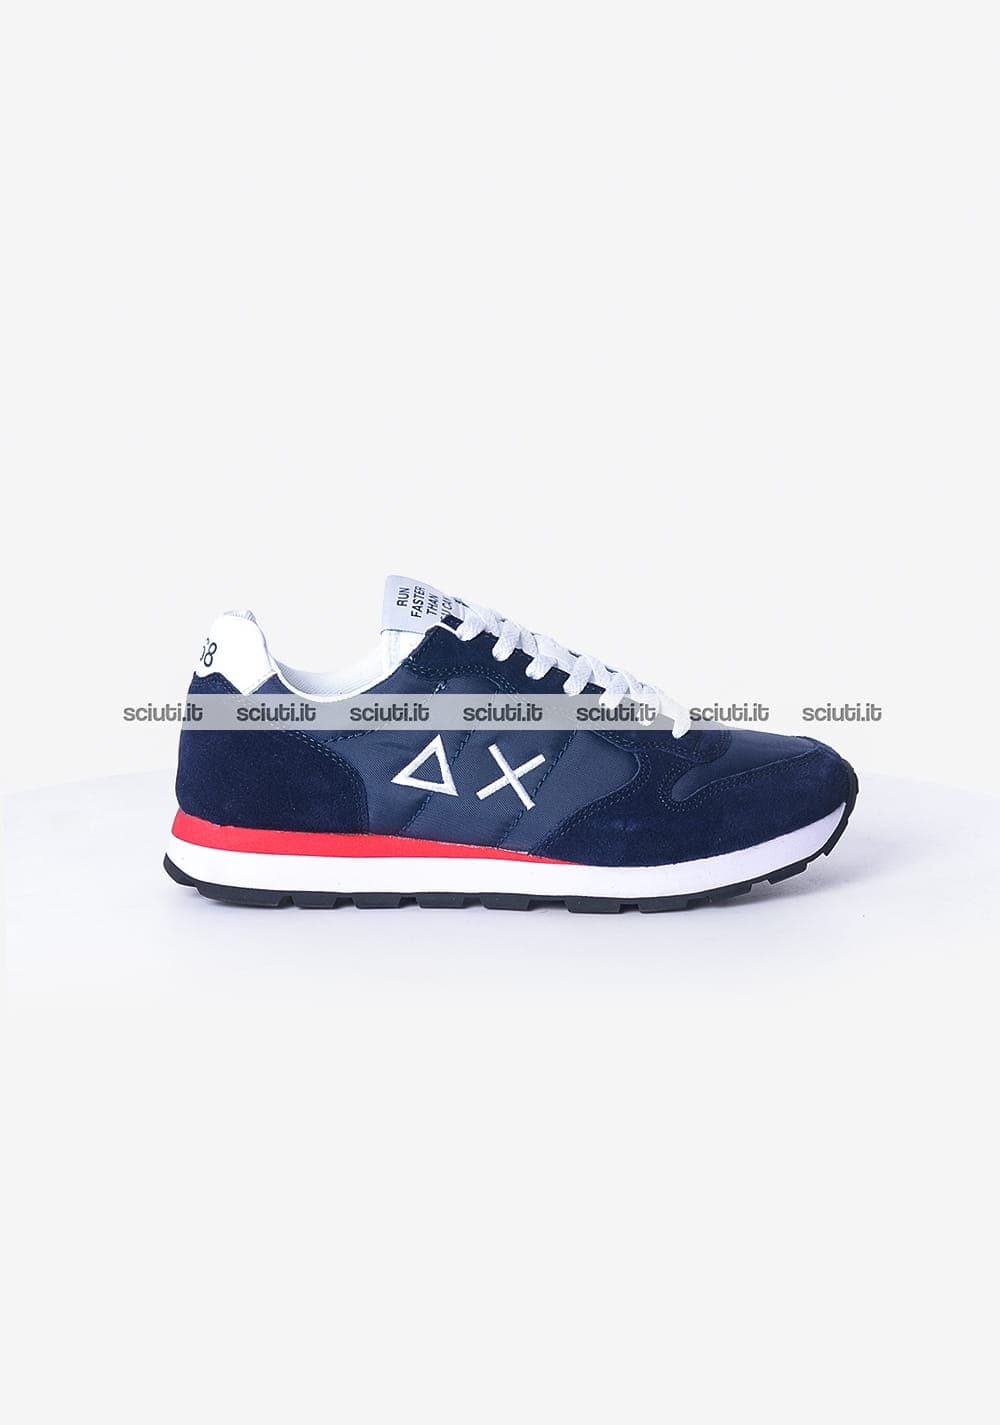 Scarpe Sun68 uomo Tom solid nylon blu navy | Sciuti.it